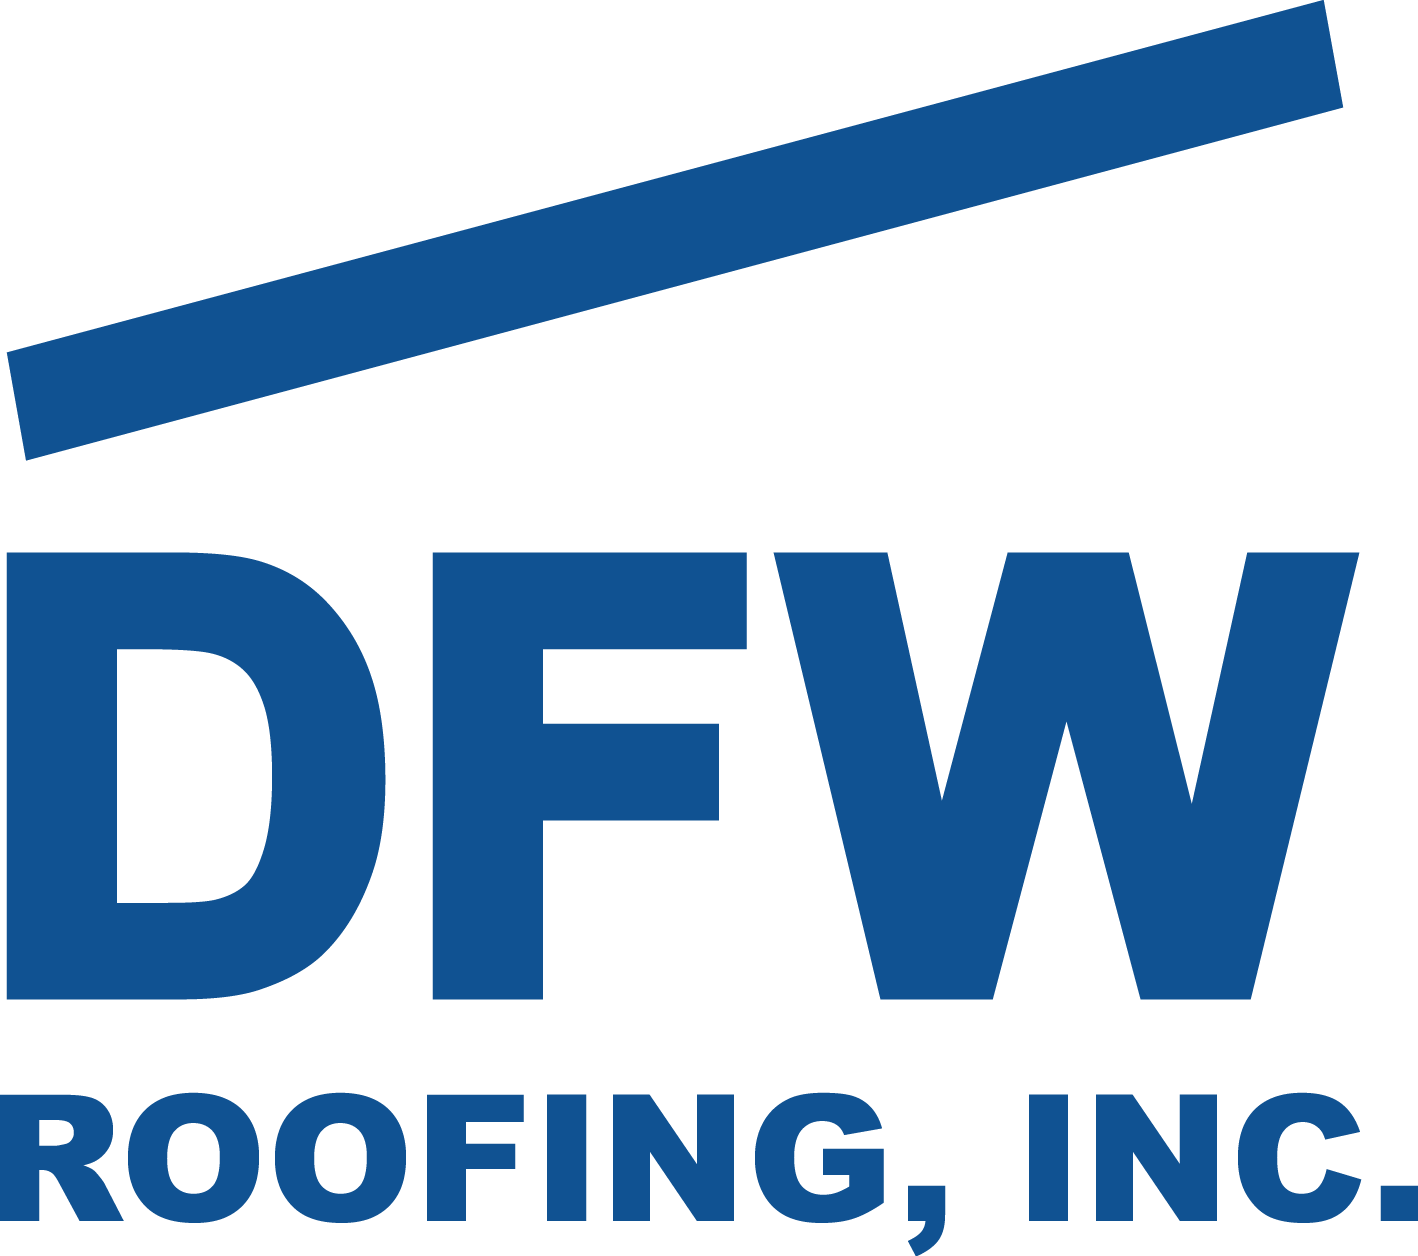 DFW Roofing Inc.